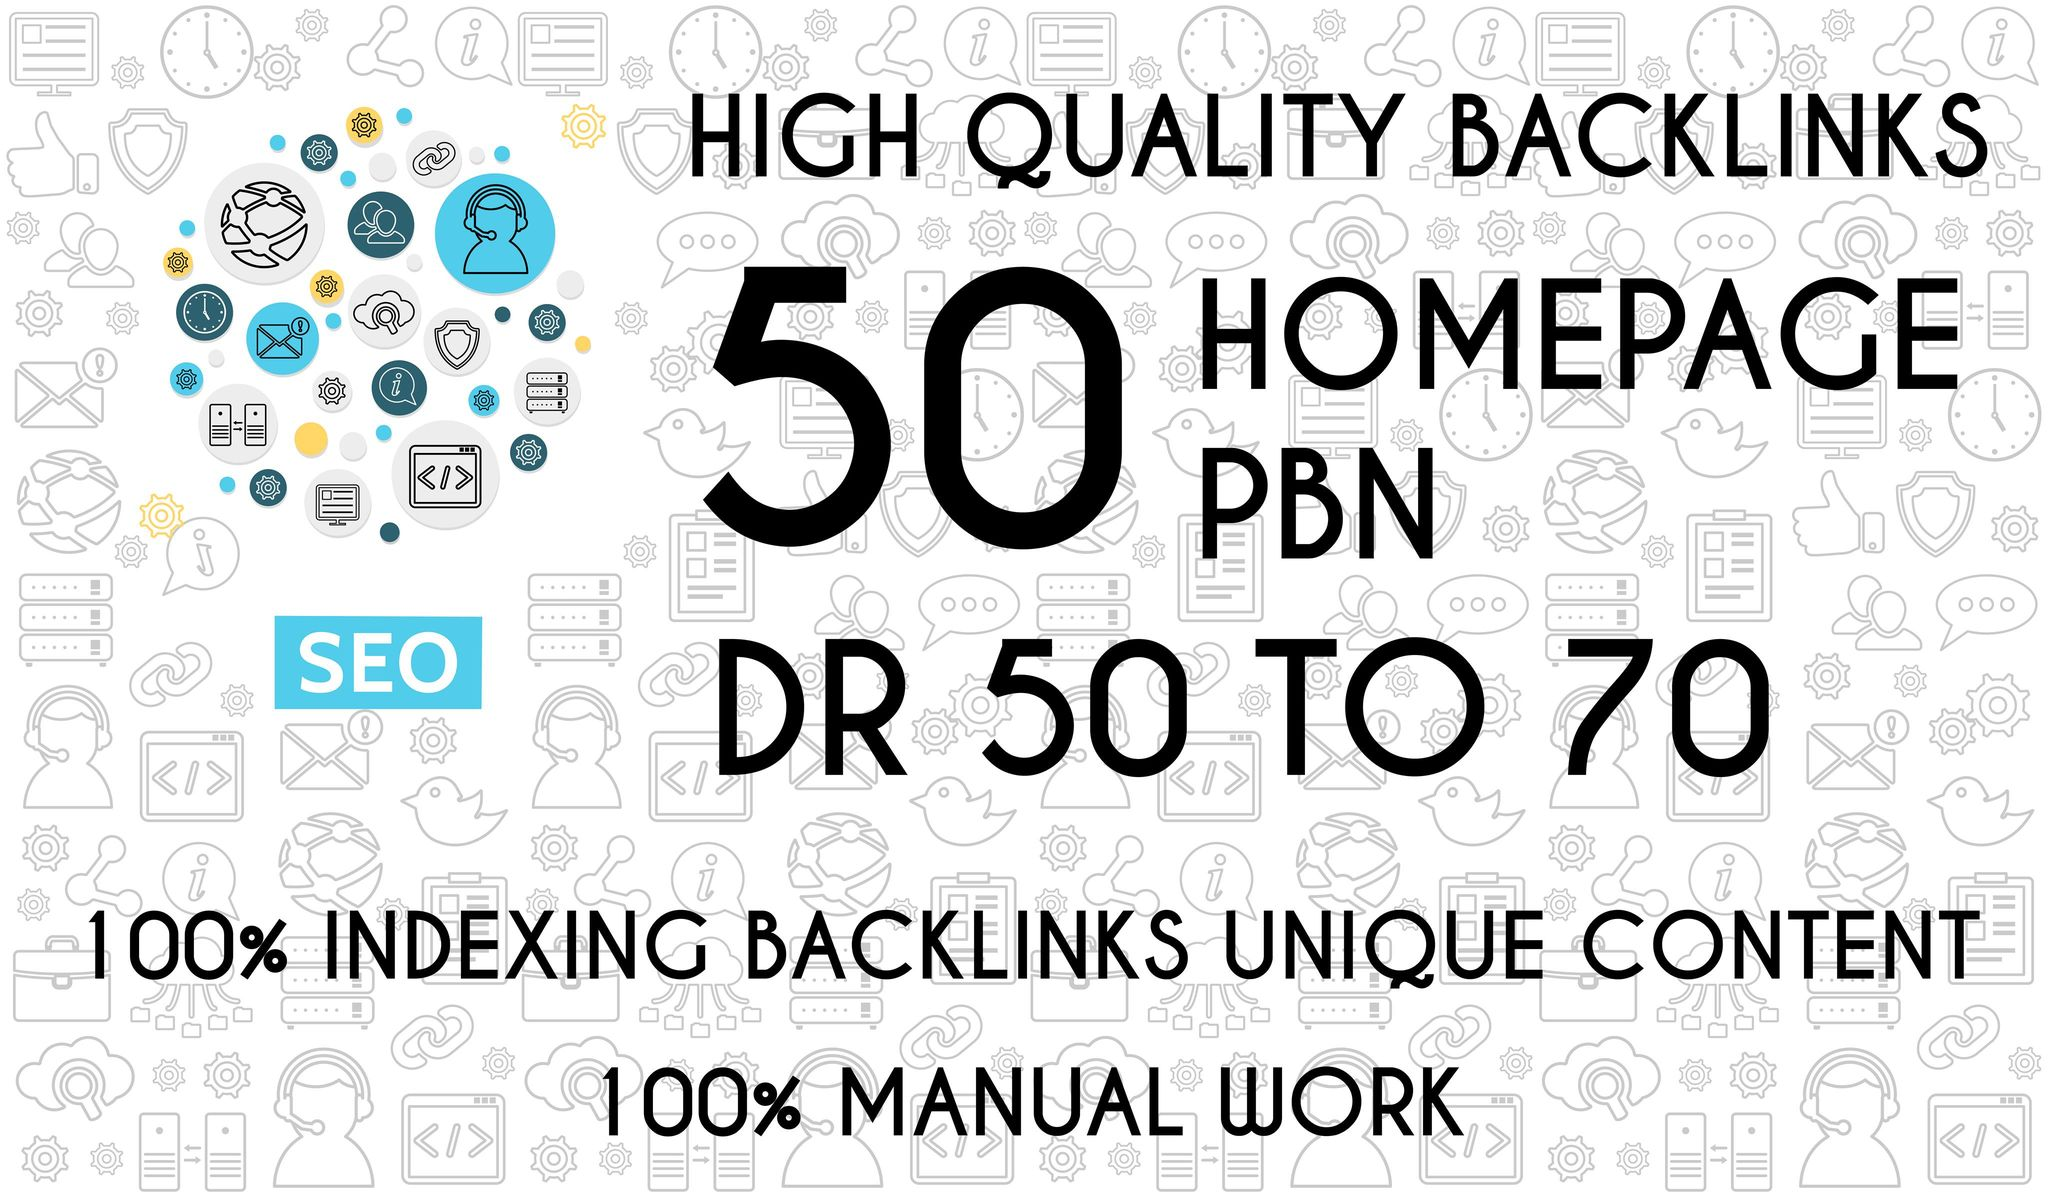 Get 50 PBN Homepage Backlinks Dofollow On DR 50 to 70